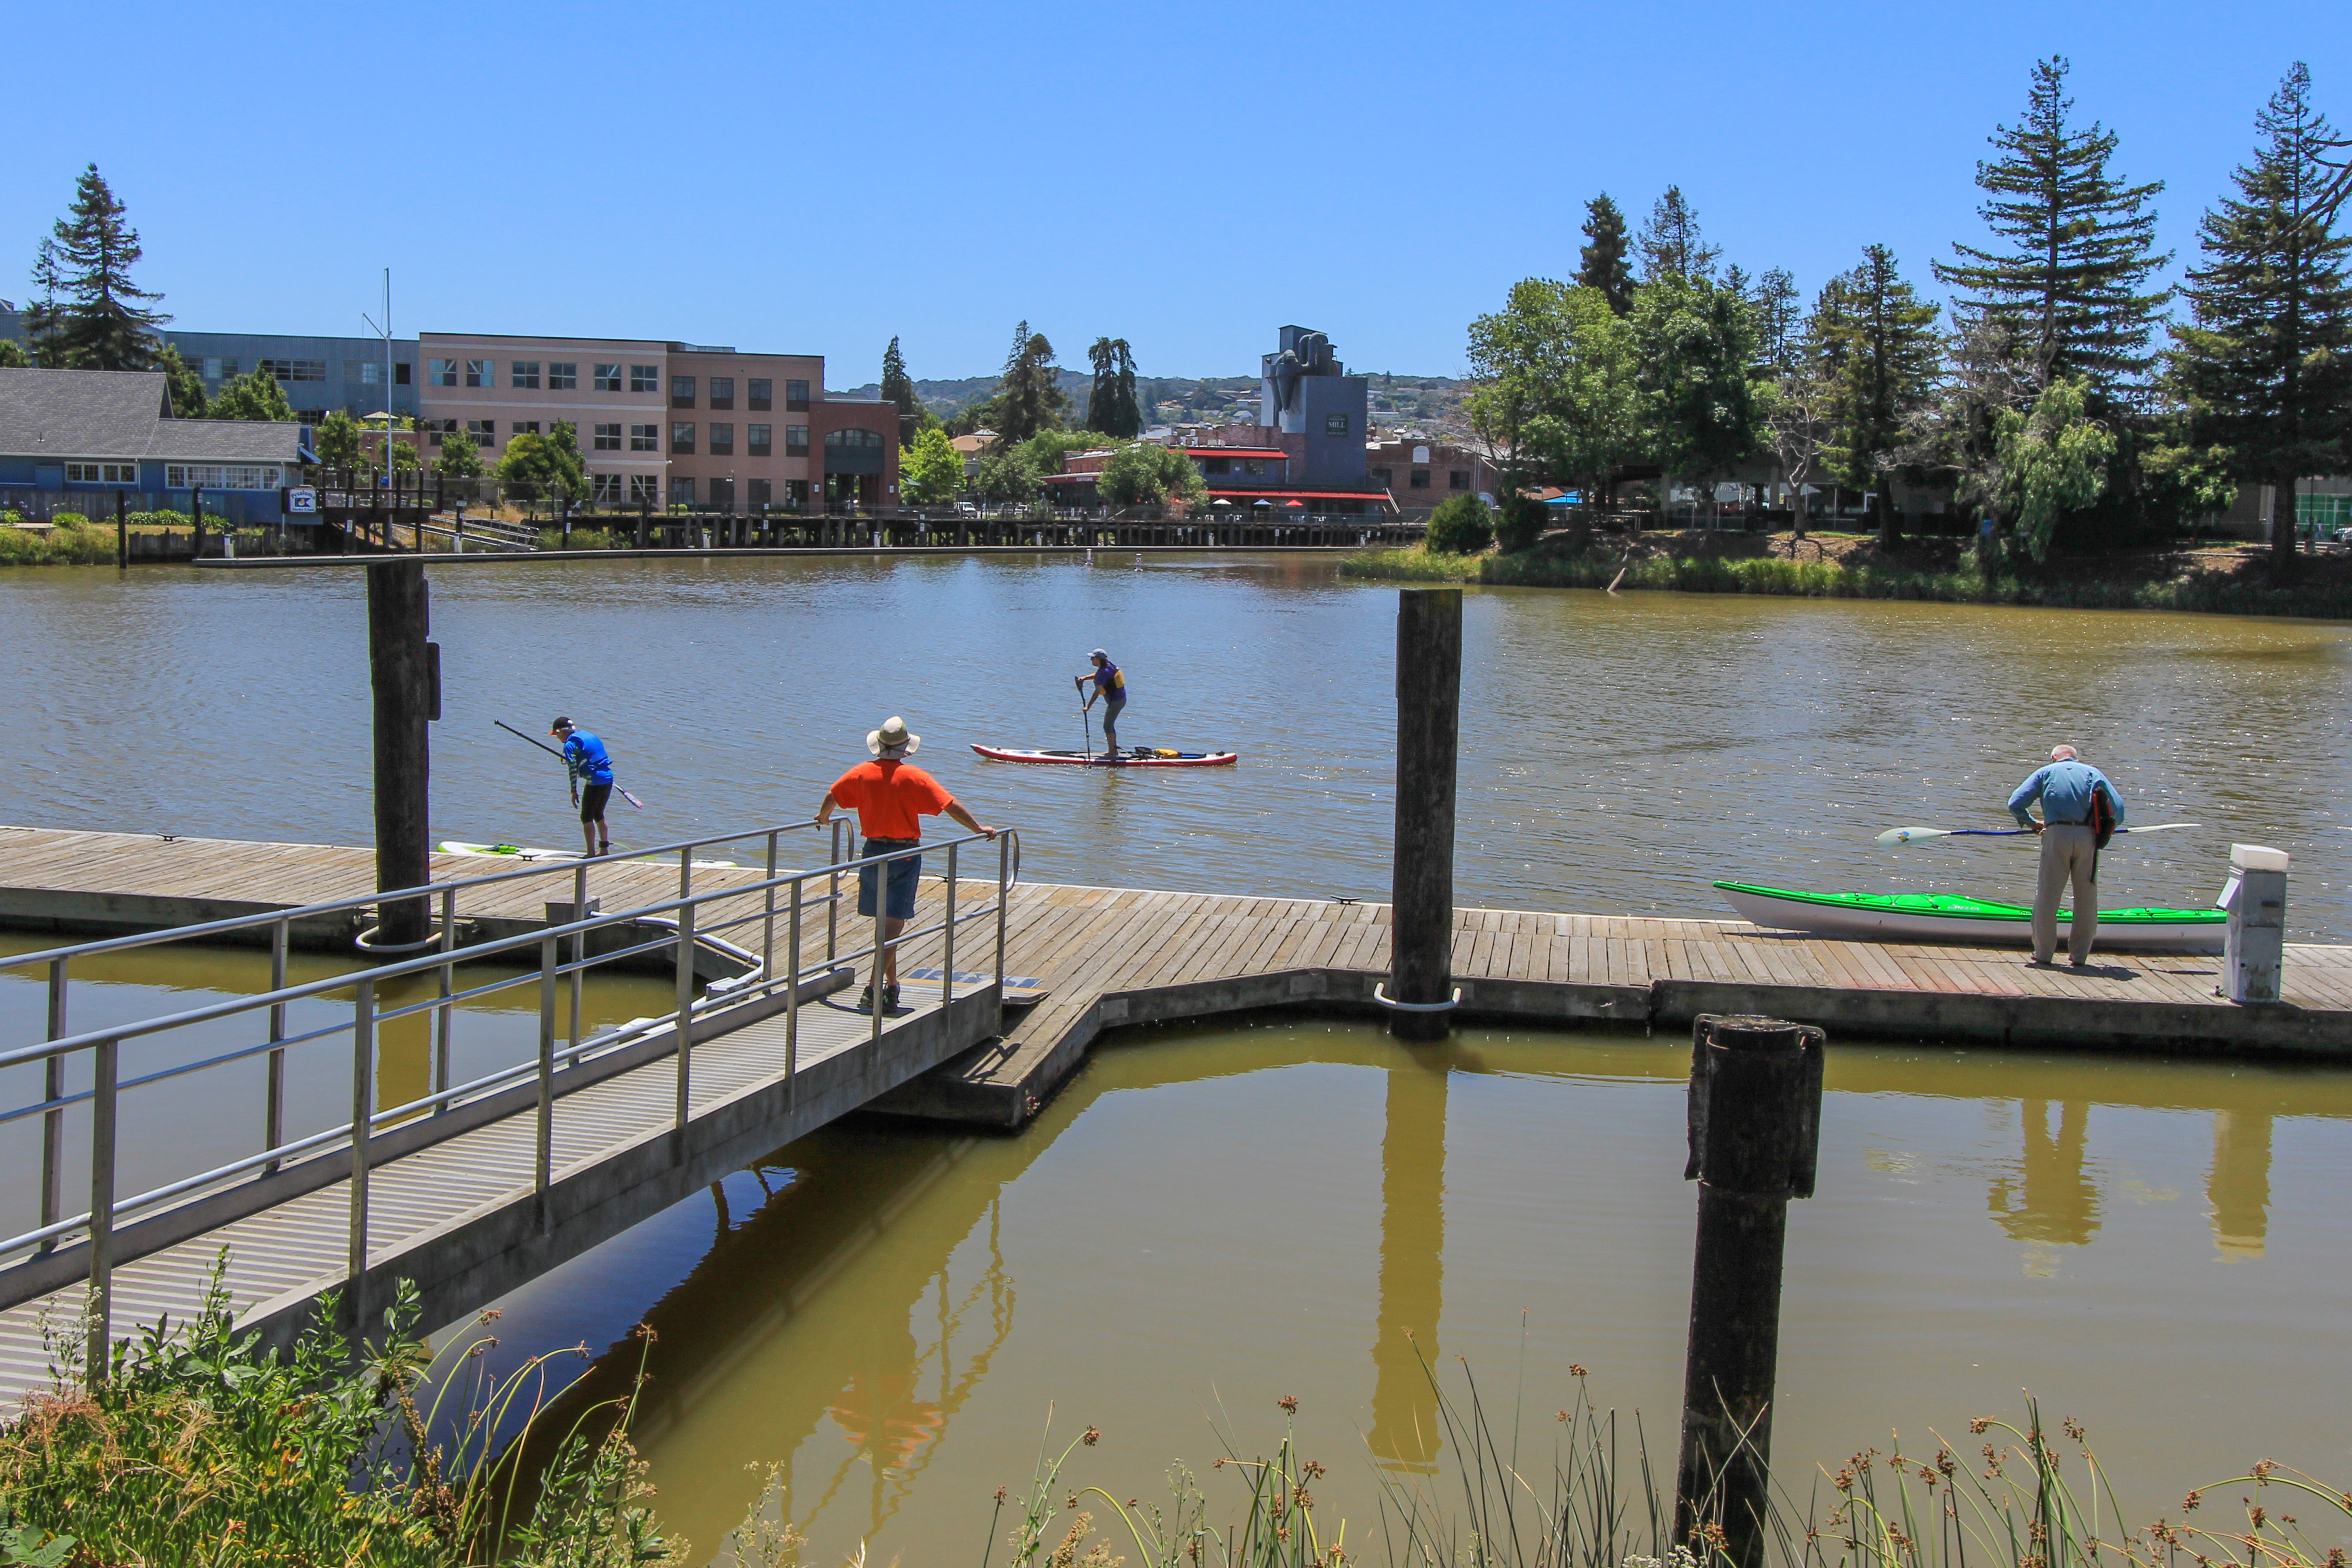 Person on ramp to dock, another on dock getting into kayak, as a standup paddler passes by in the river